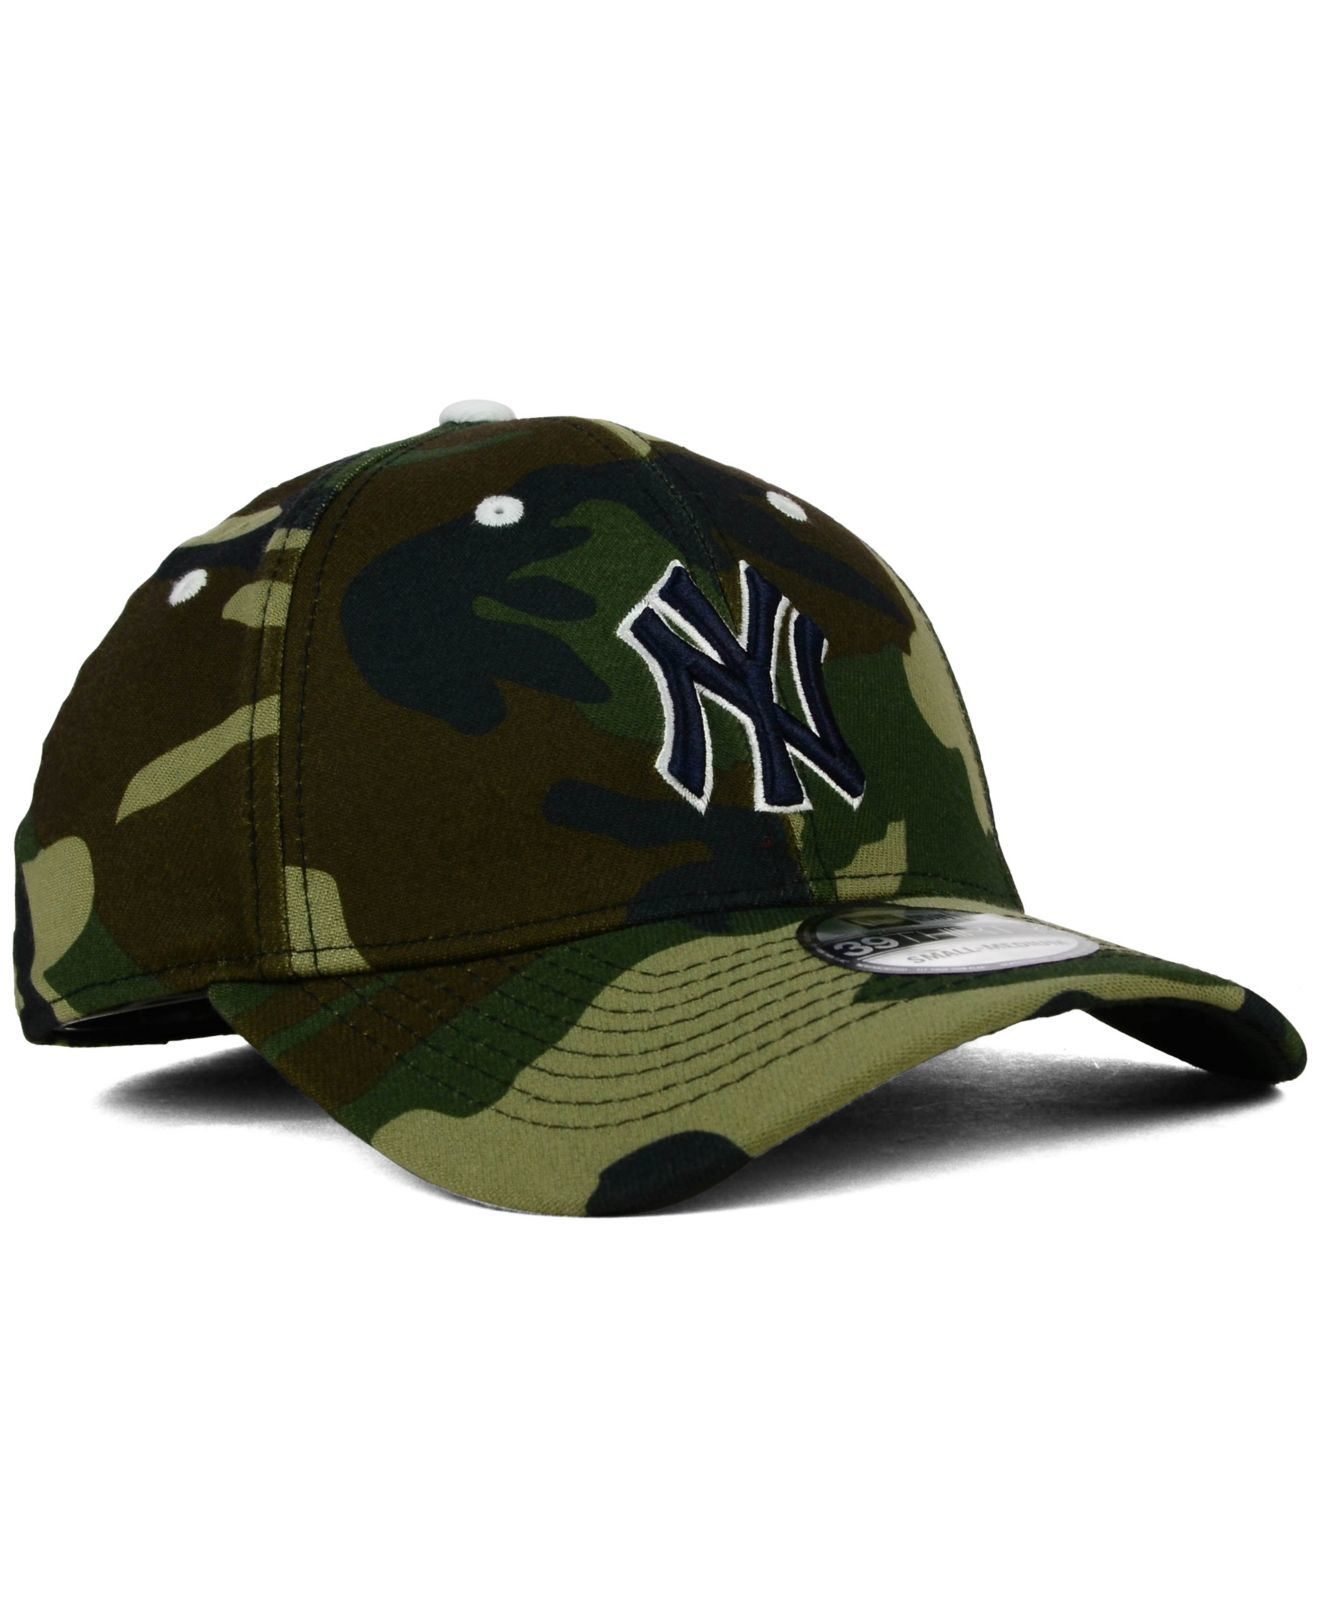 Ny Hat Camo - Saffron Indian Cuisine 042221a8948